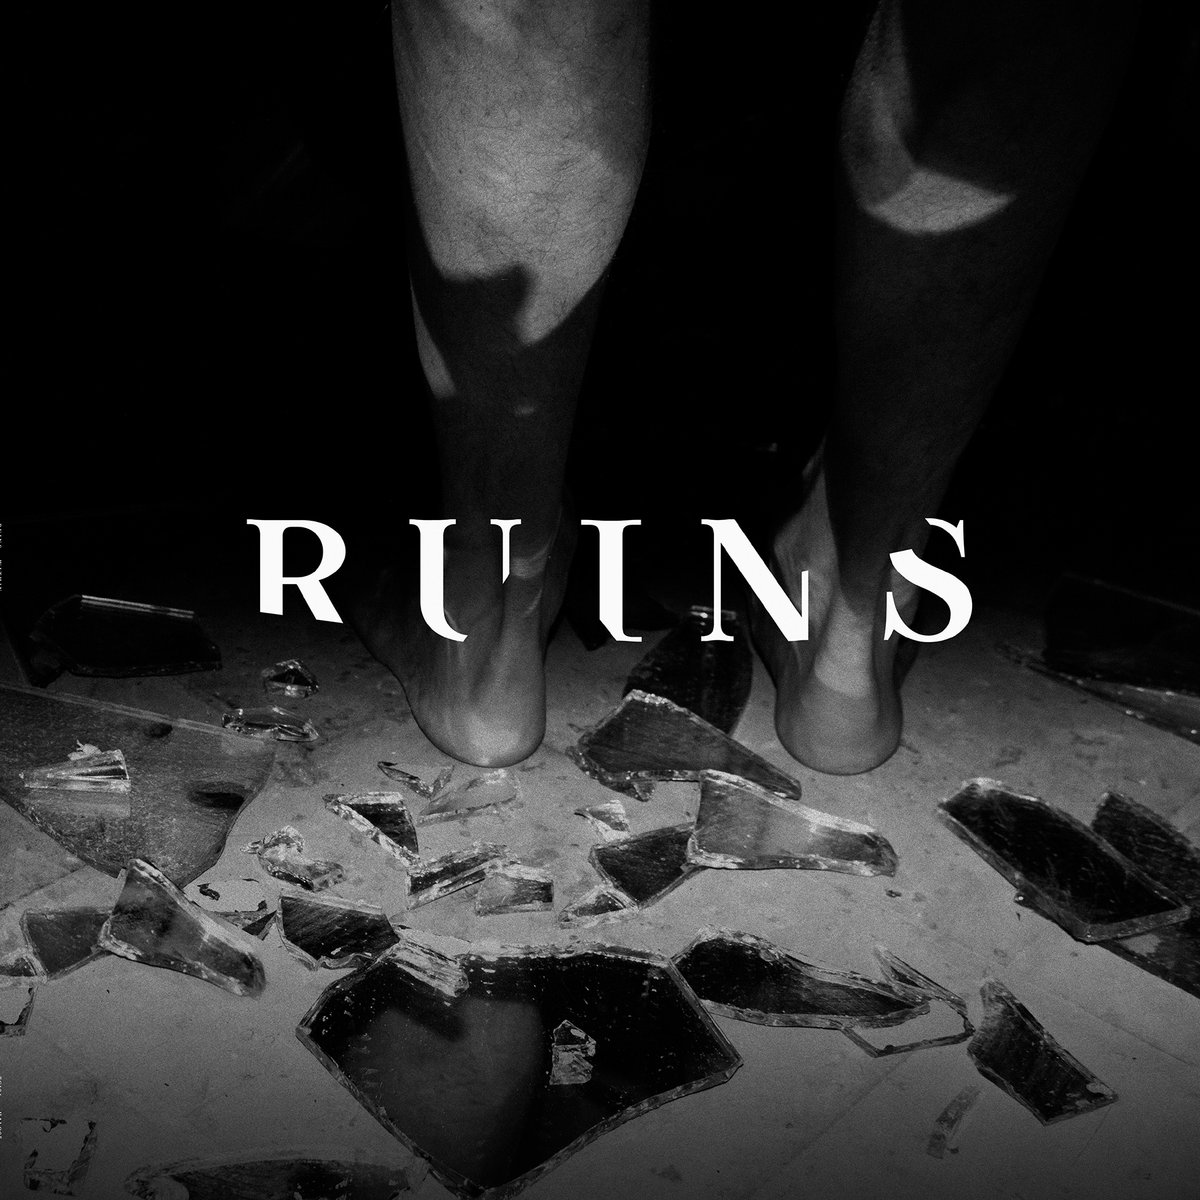 Ruins - Differre @ 'Within' album (bielefeld, metal)